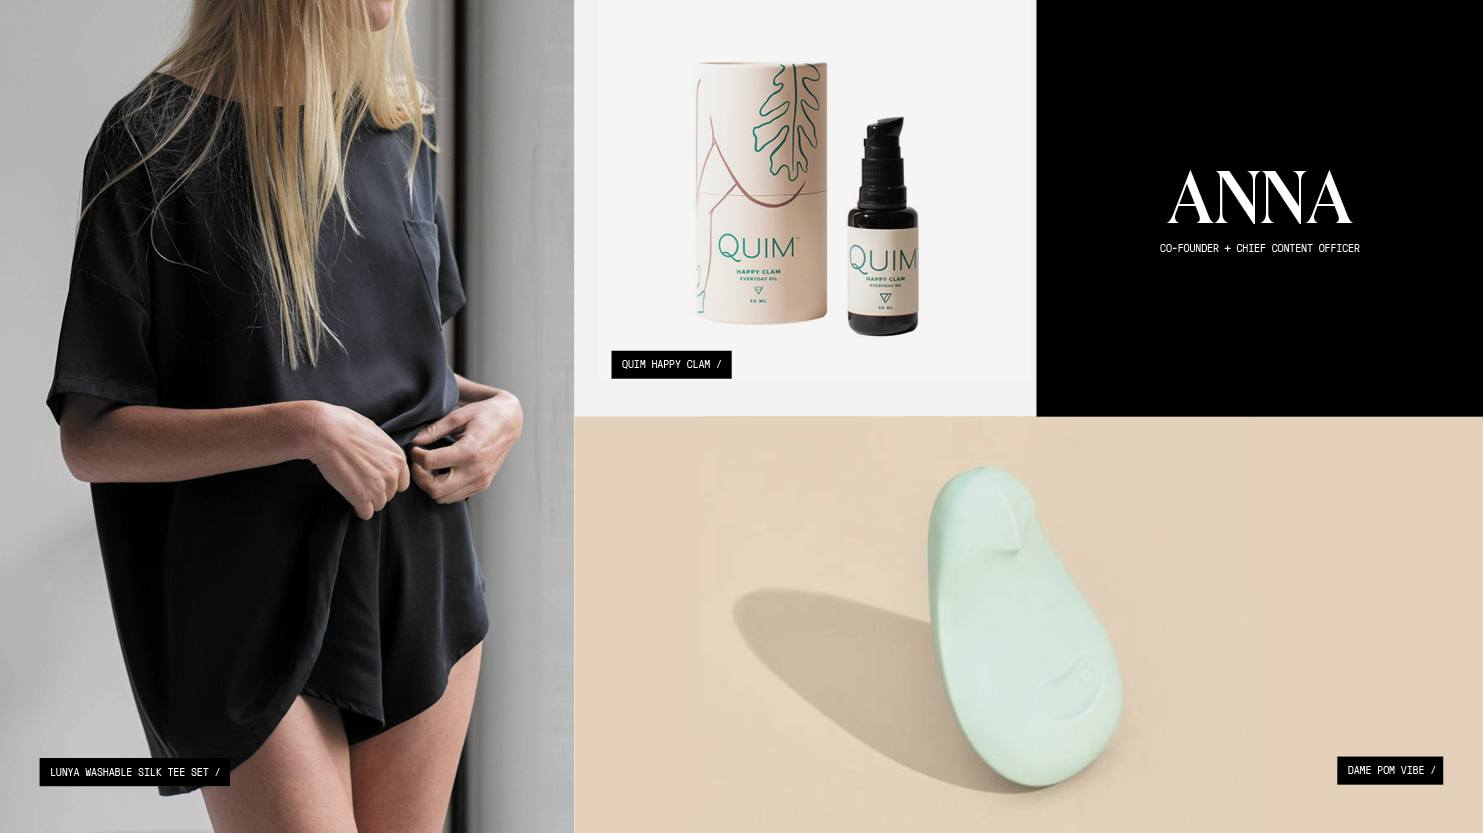 A roundup of gift picks including pajamas, body oil, and a vibrator.